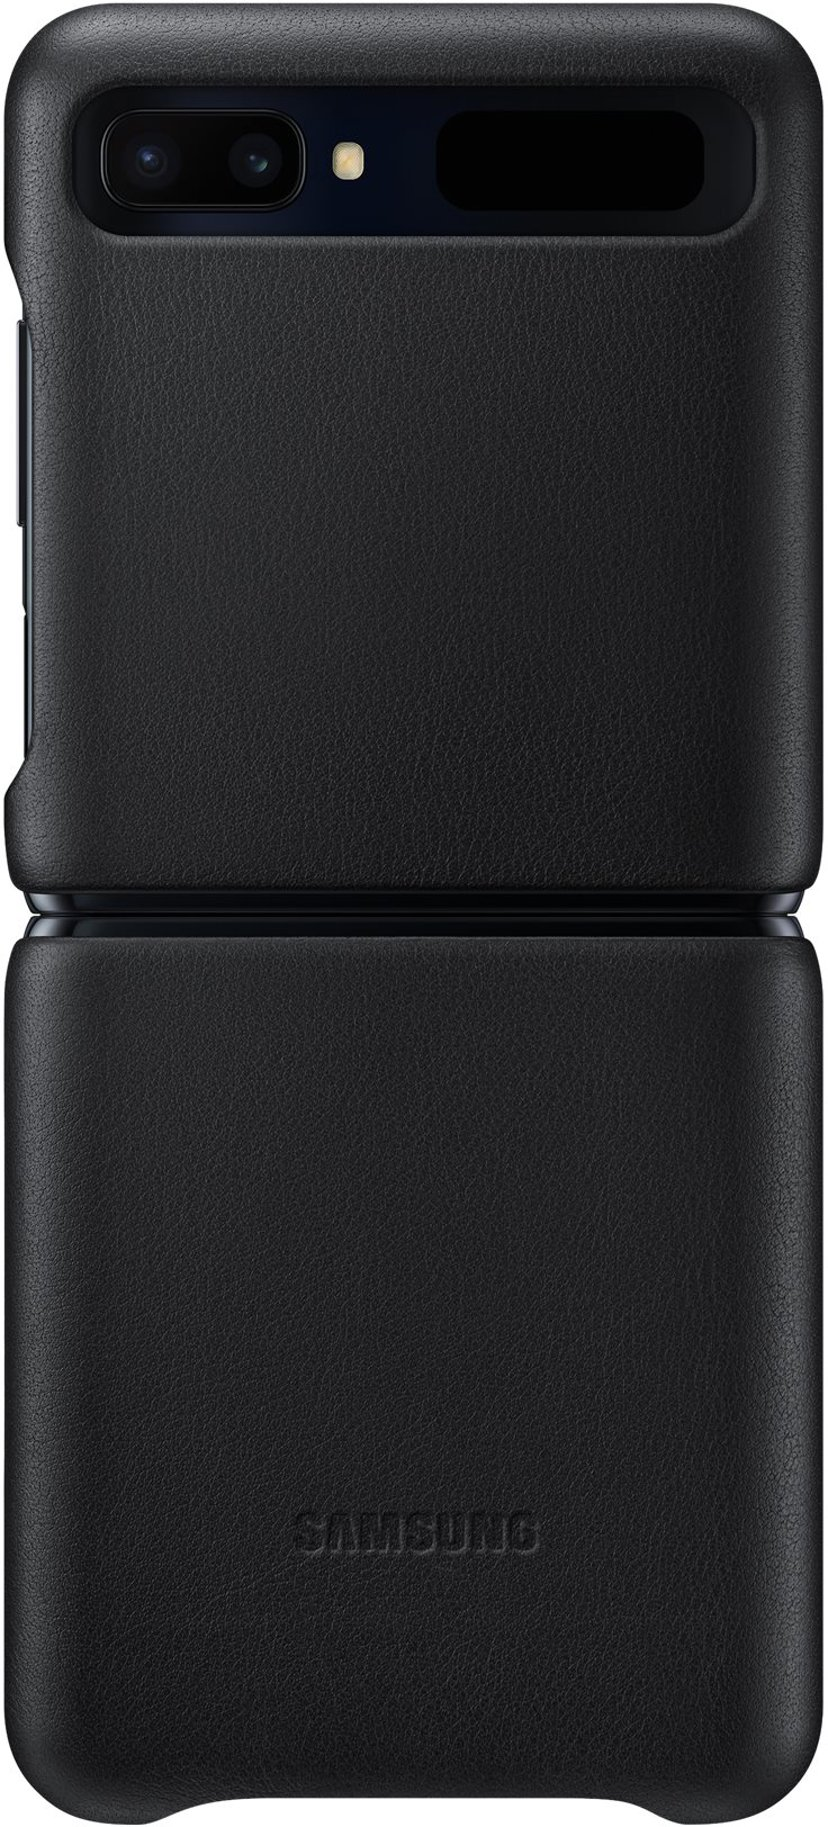 Samsung Leather Cover EF-VF700 Samsung Galaxy Z Flip Svart